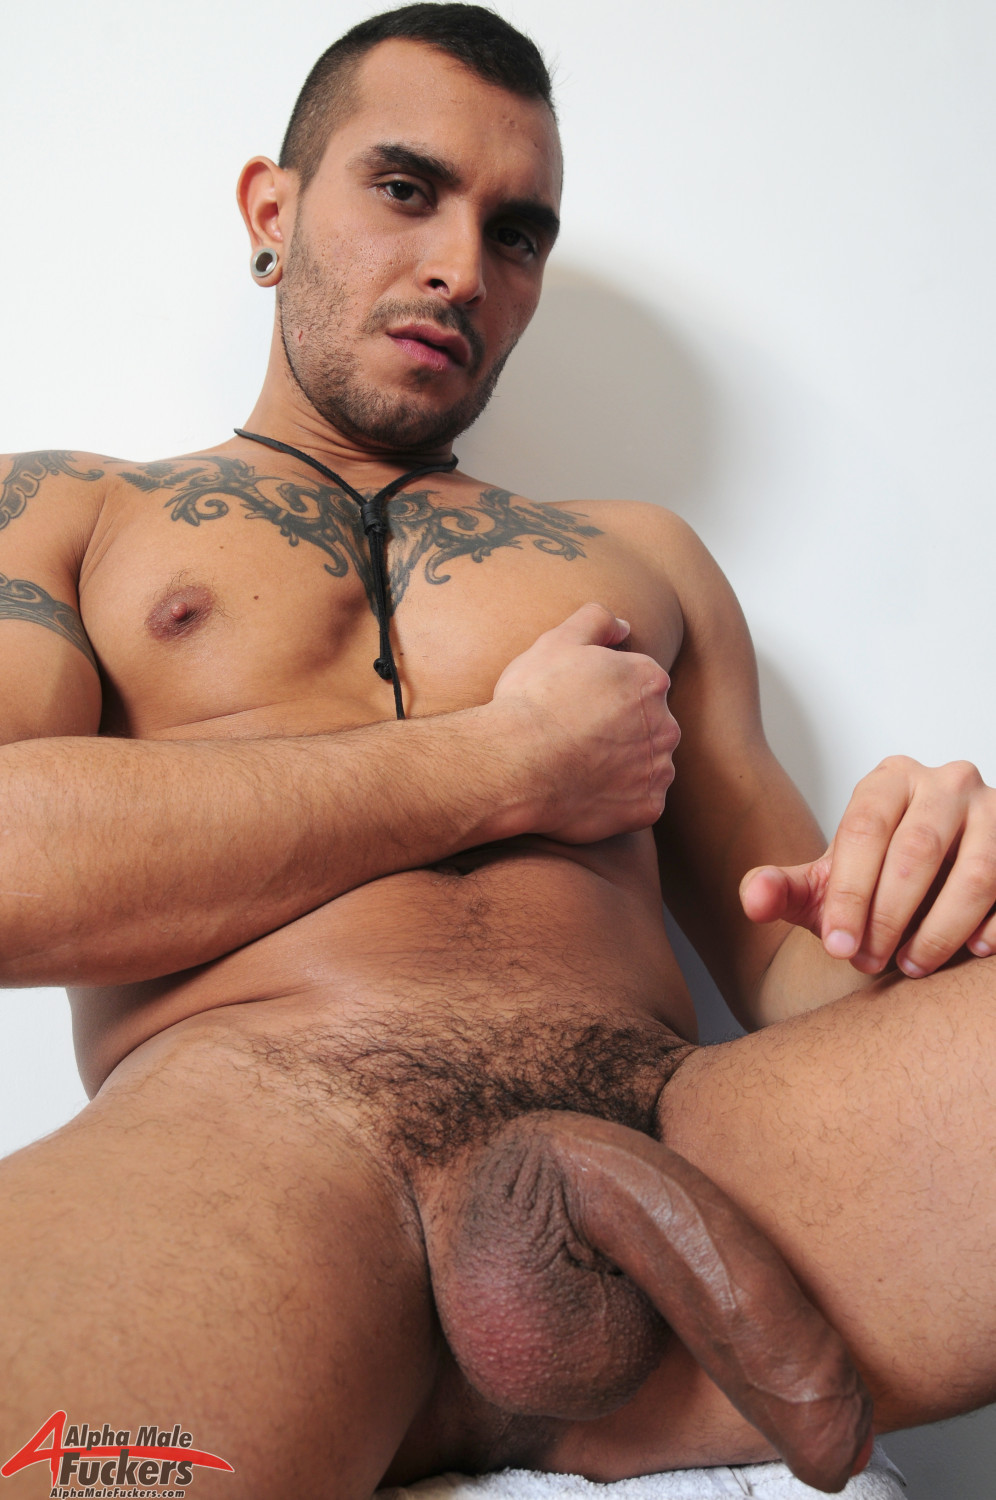 Big Dick Porn Gay Porn Cock Dick Huge Gay Male Solo Uncut Free Scruffy ...